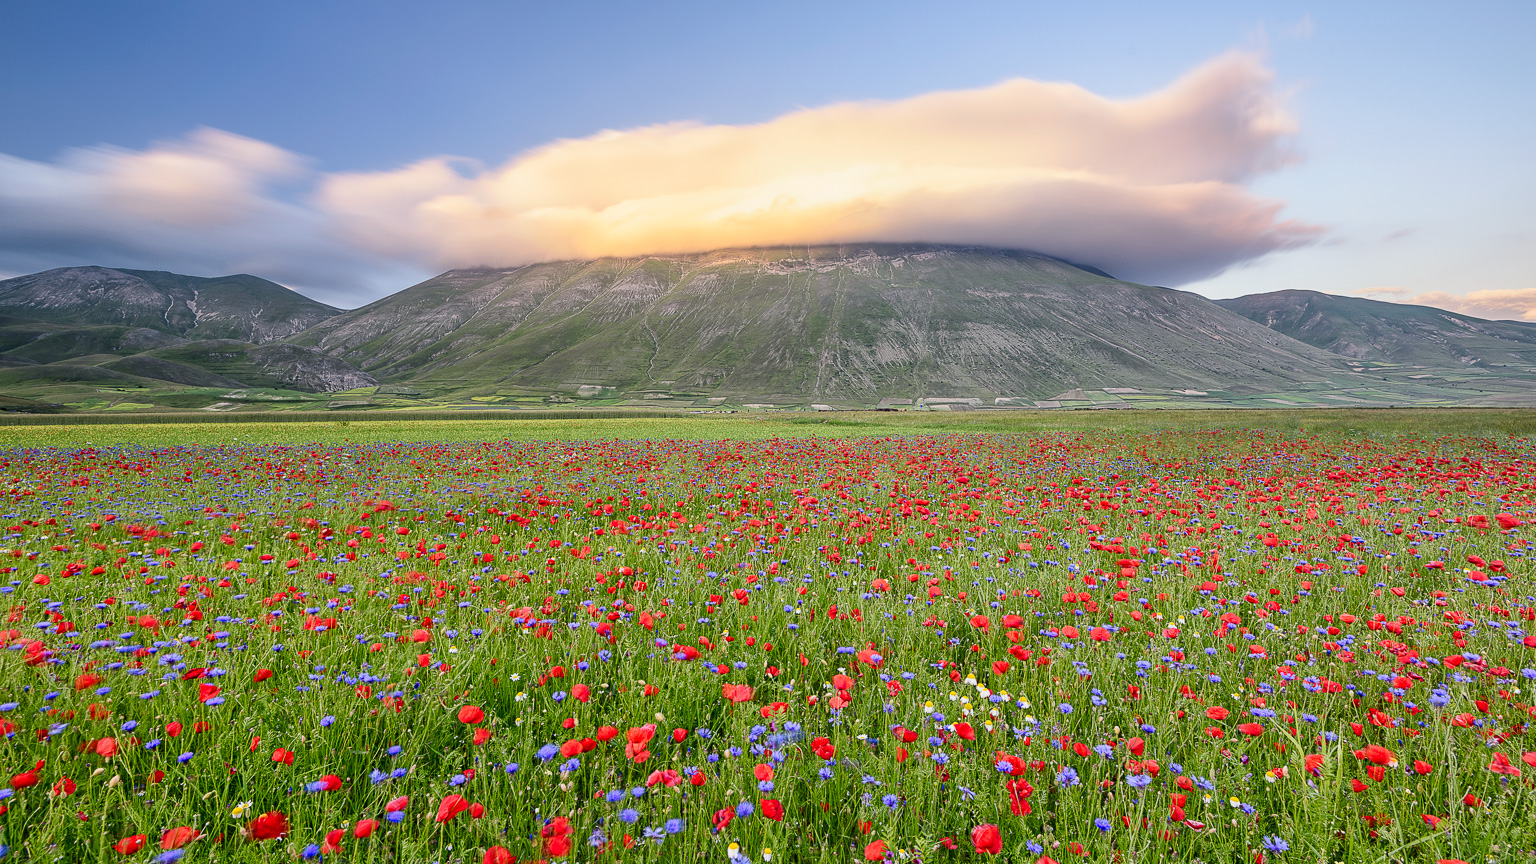 The mountain's hat - Castelluccio di Norcia, Italy